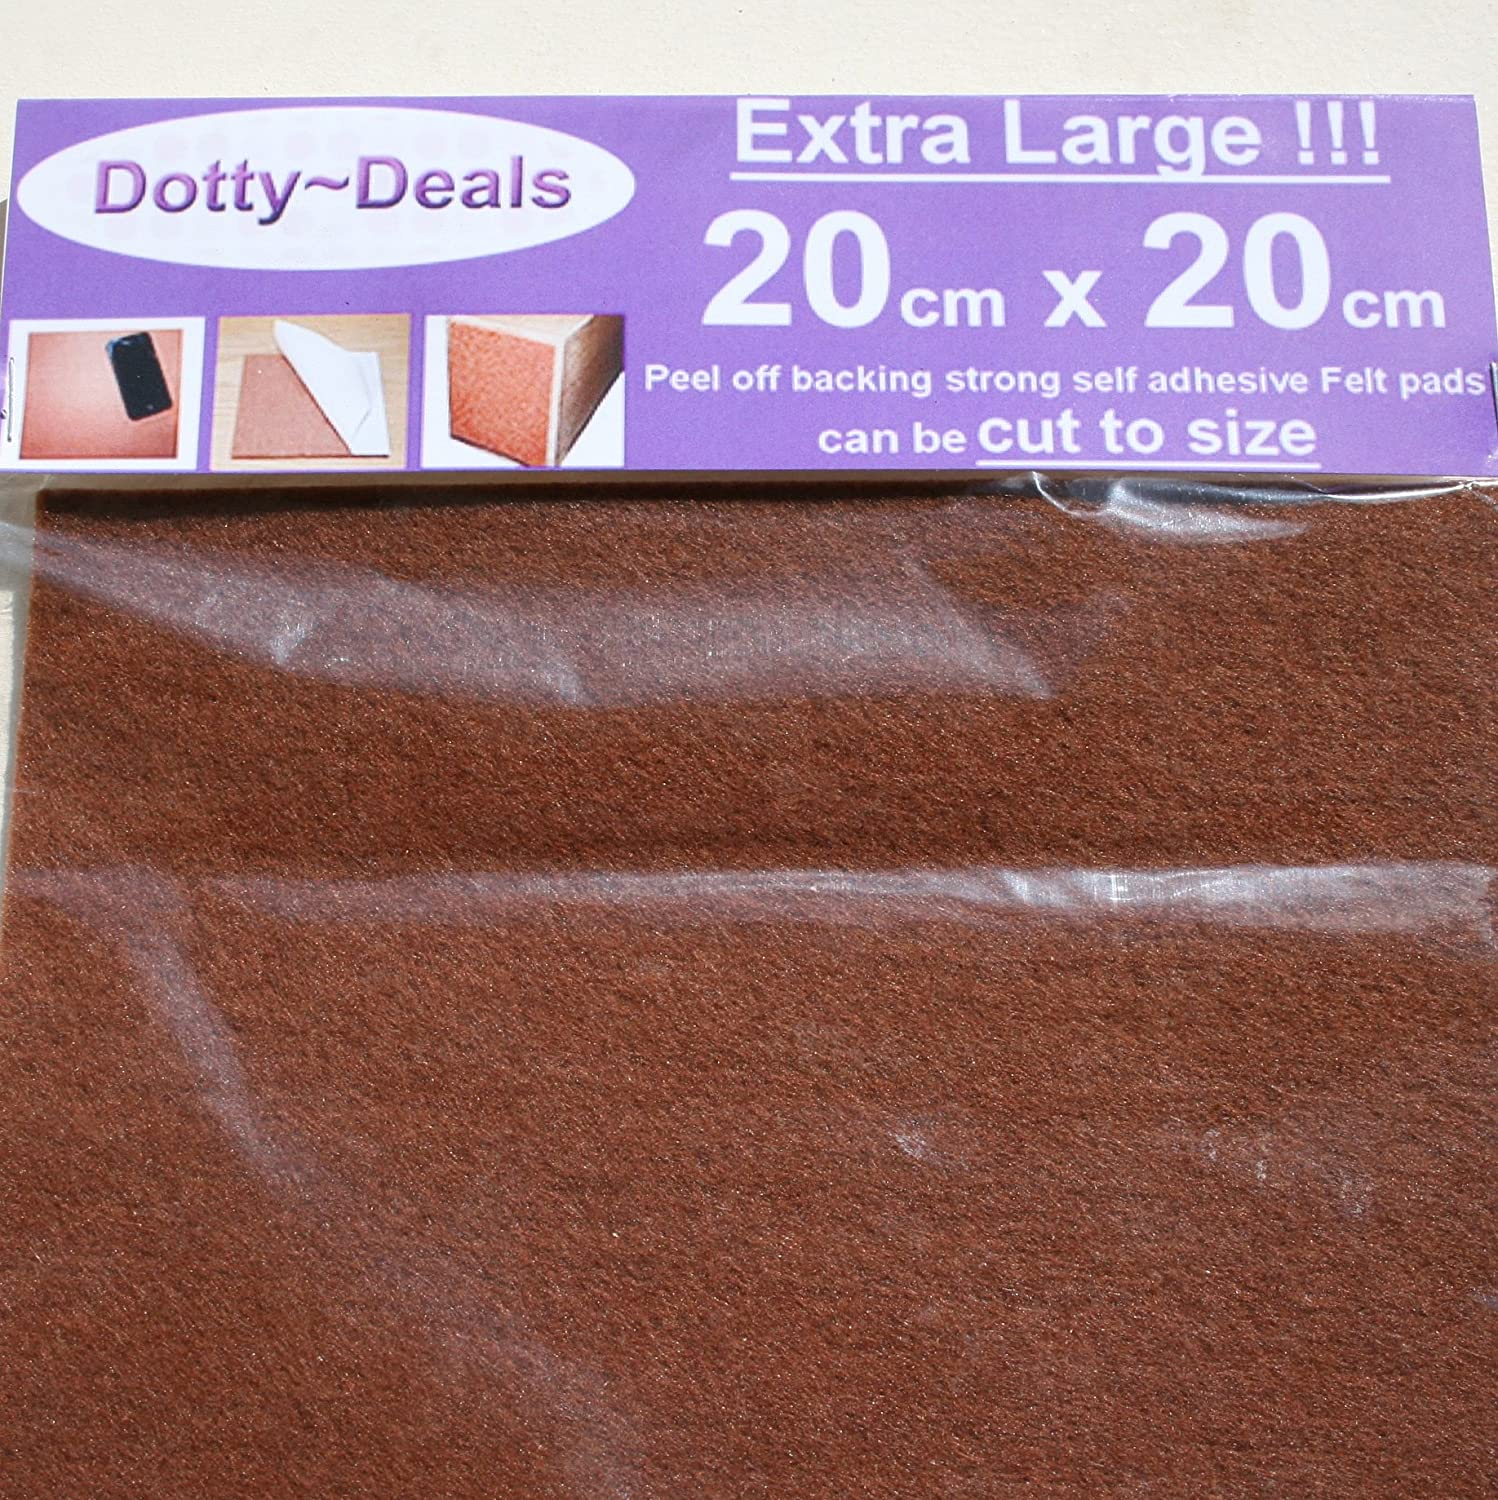 5x Extra Large 20cm X 20cm Square Self Adhesive Felt Floor Protector Pads Dotty Deals